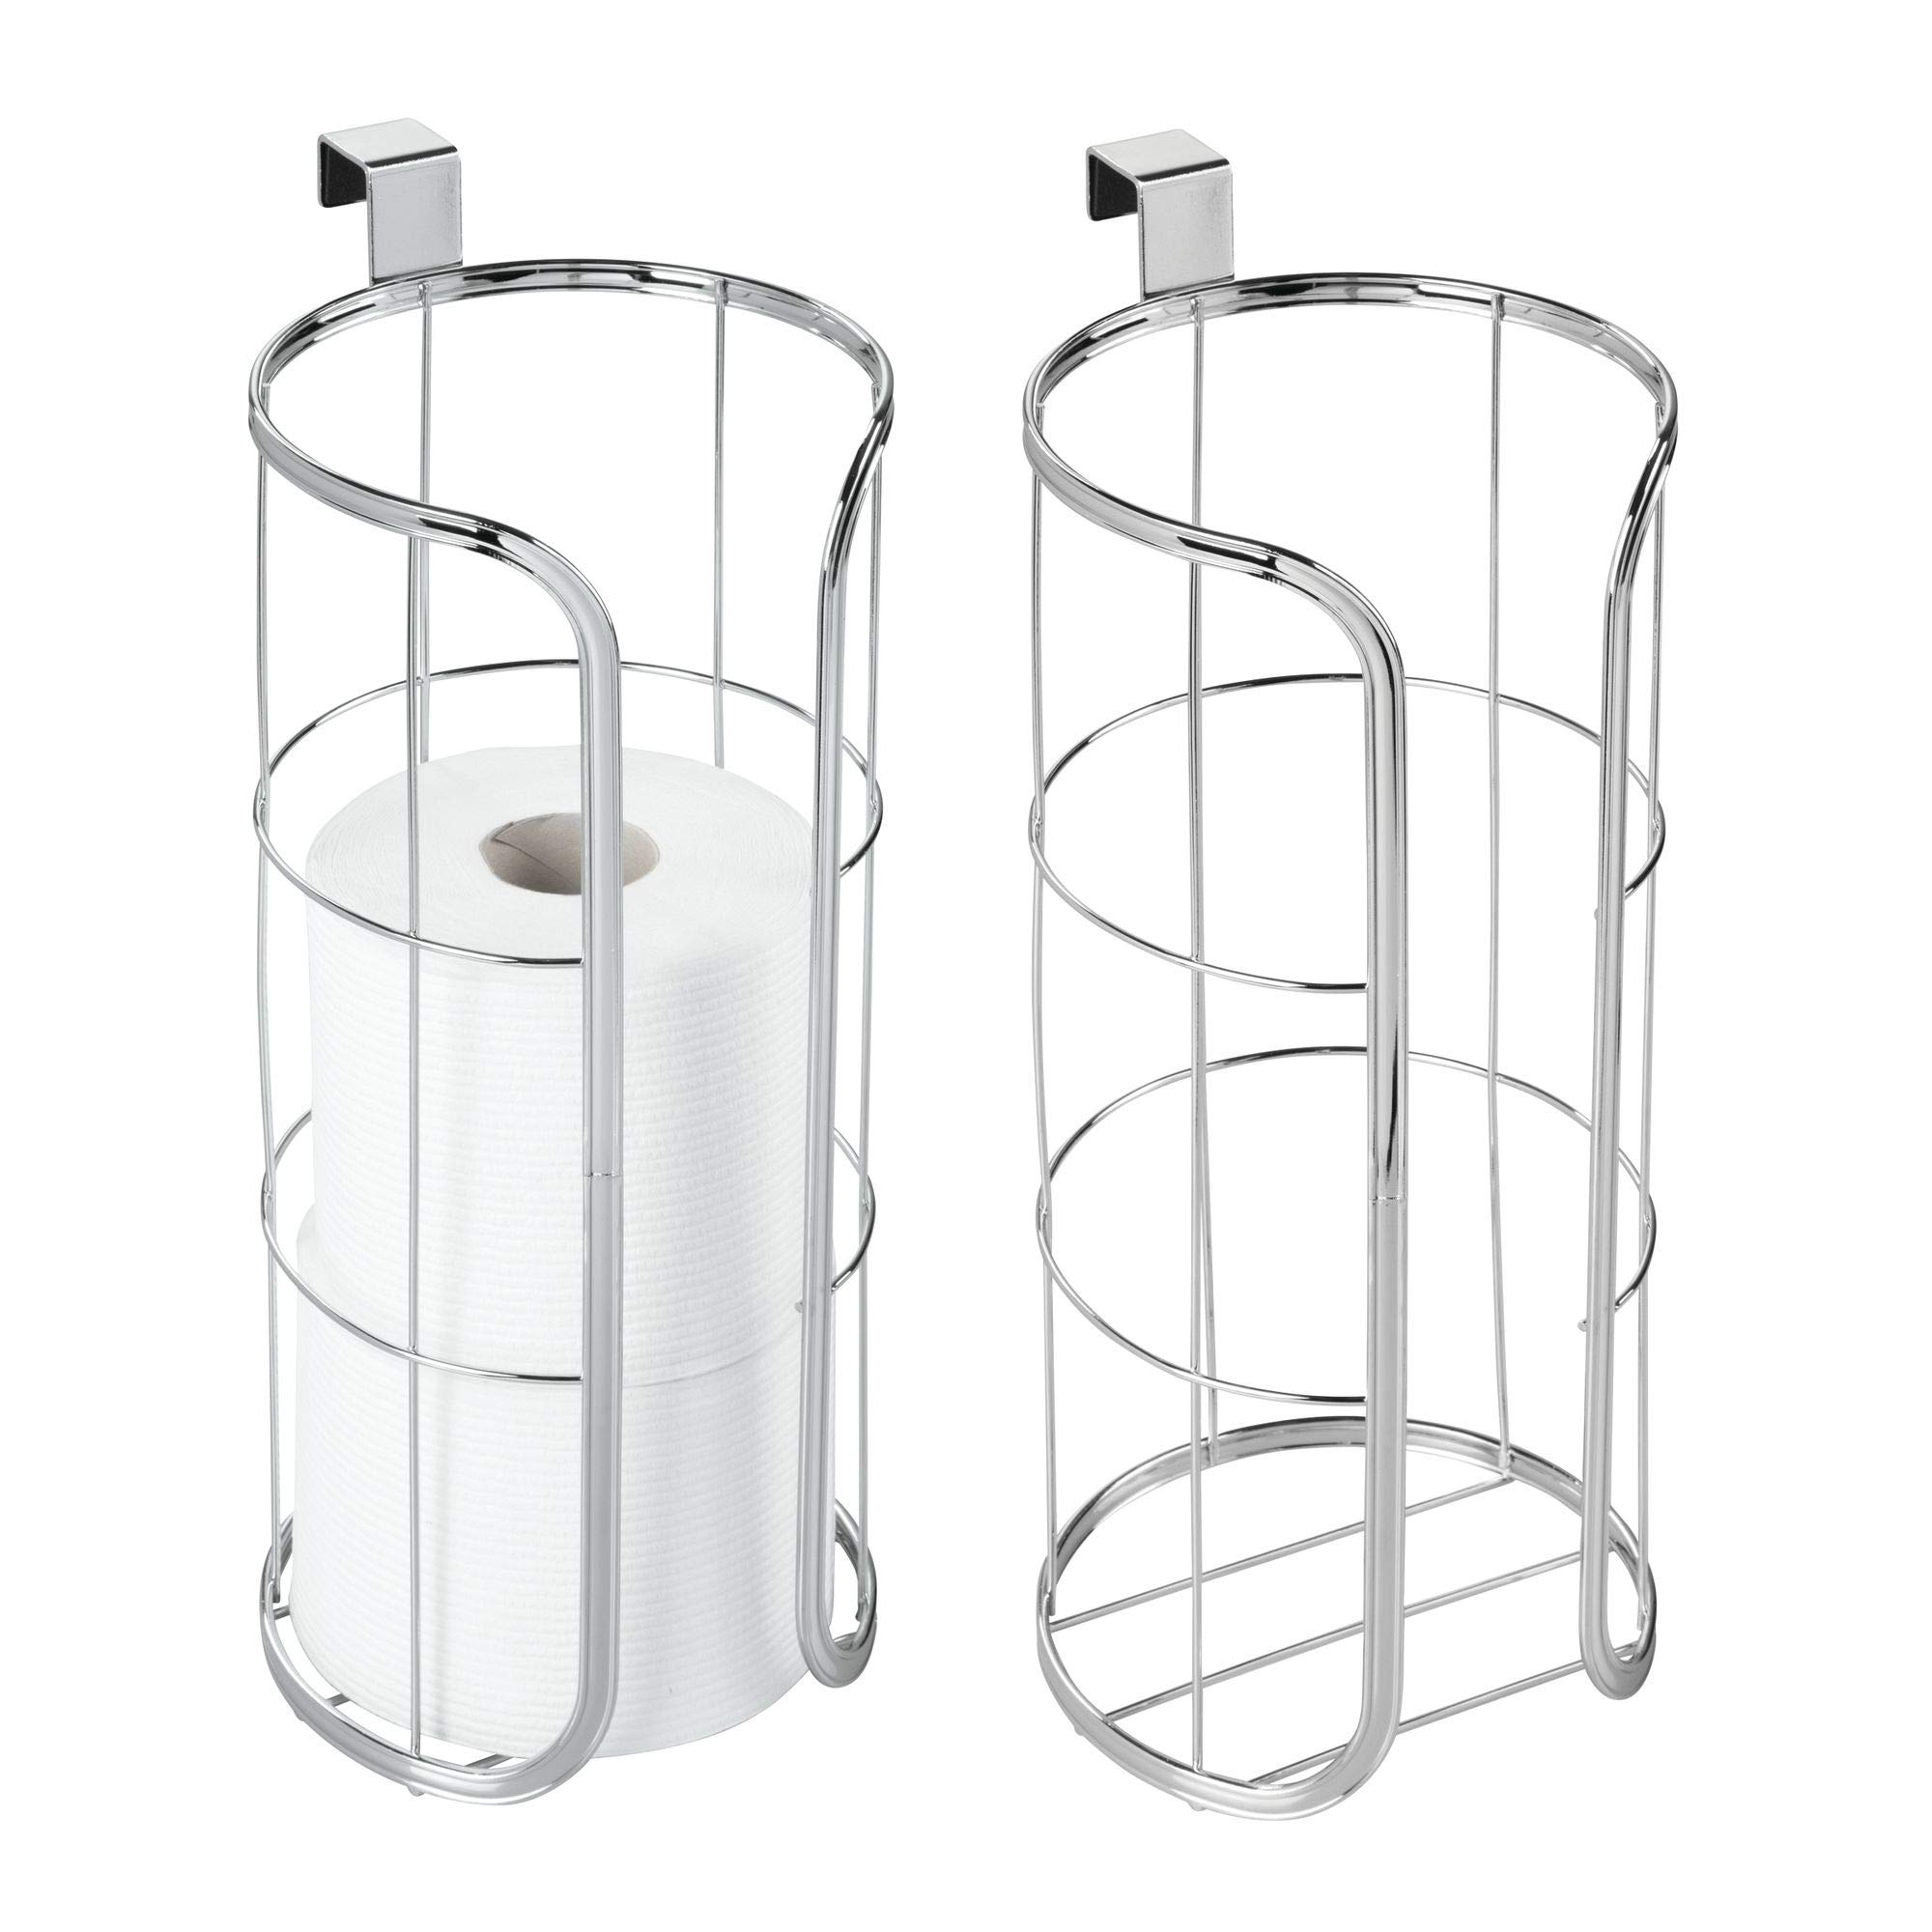 mDesign Modern Over The Tank Hanging Toilet Tissue Paper Roll Holder and Reserve for Bathroom Storage - Stores Three Extra Rolls, Holds Jumbo-Sized Rolls - Pack of 2, Durable Metal Wire in Chrome